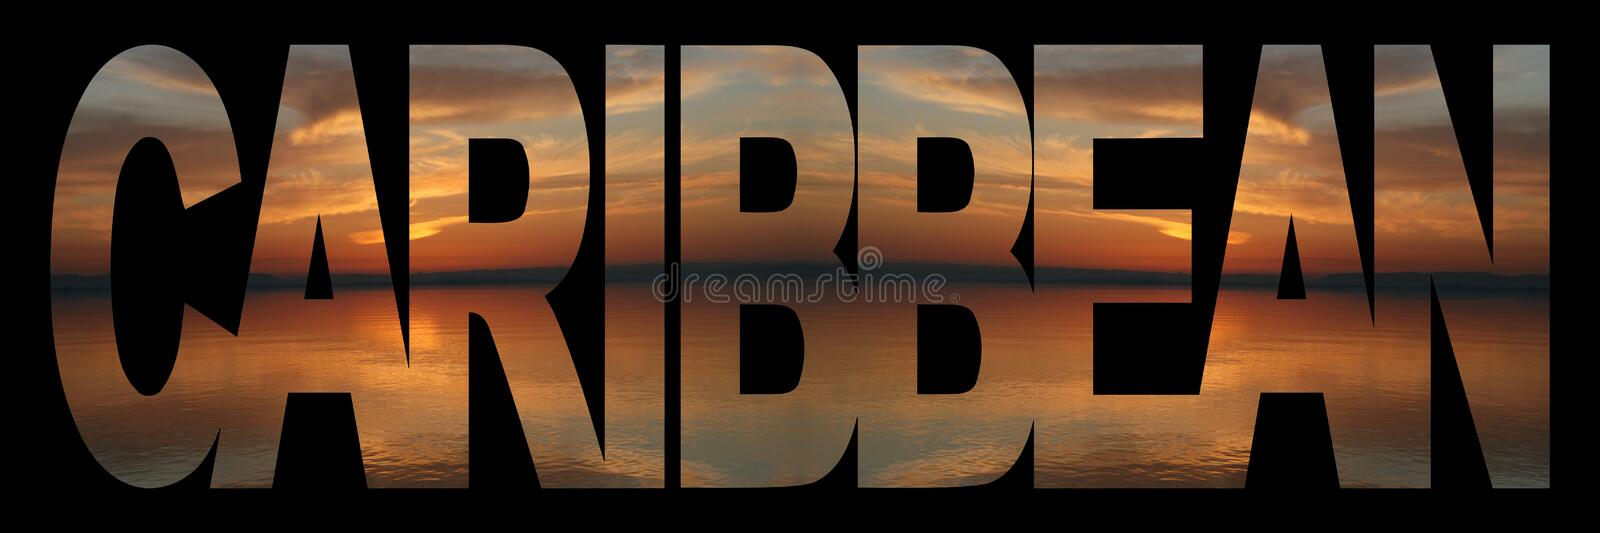 Caribbean Text With Sunset Royalty Free Stock Images